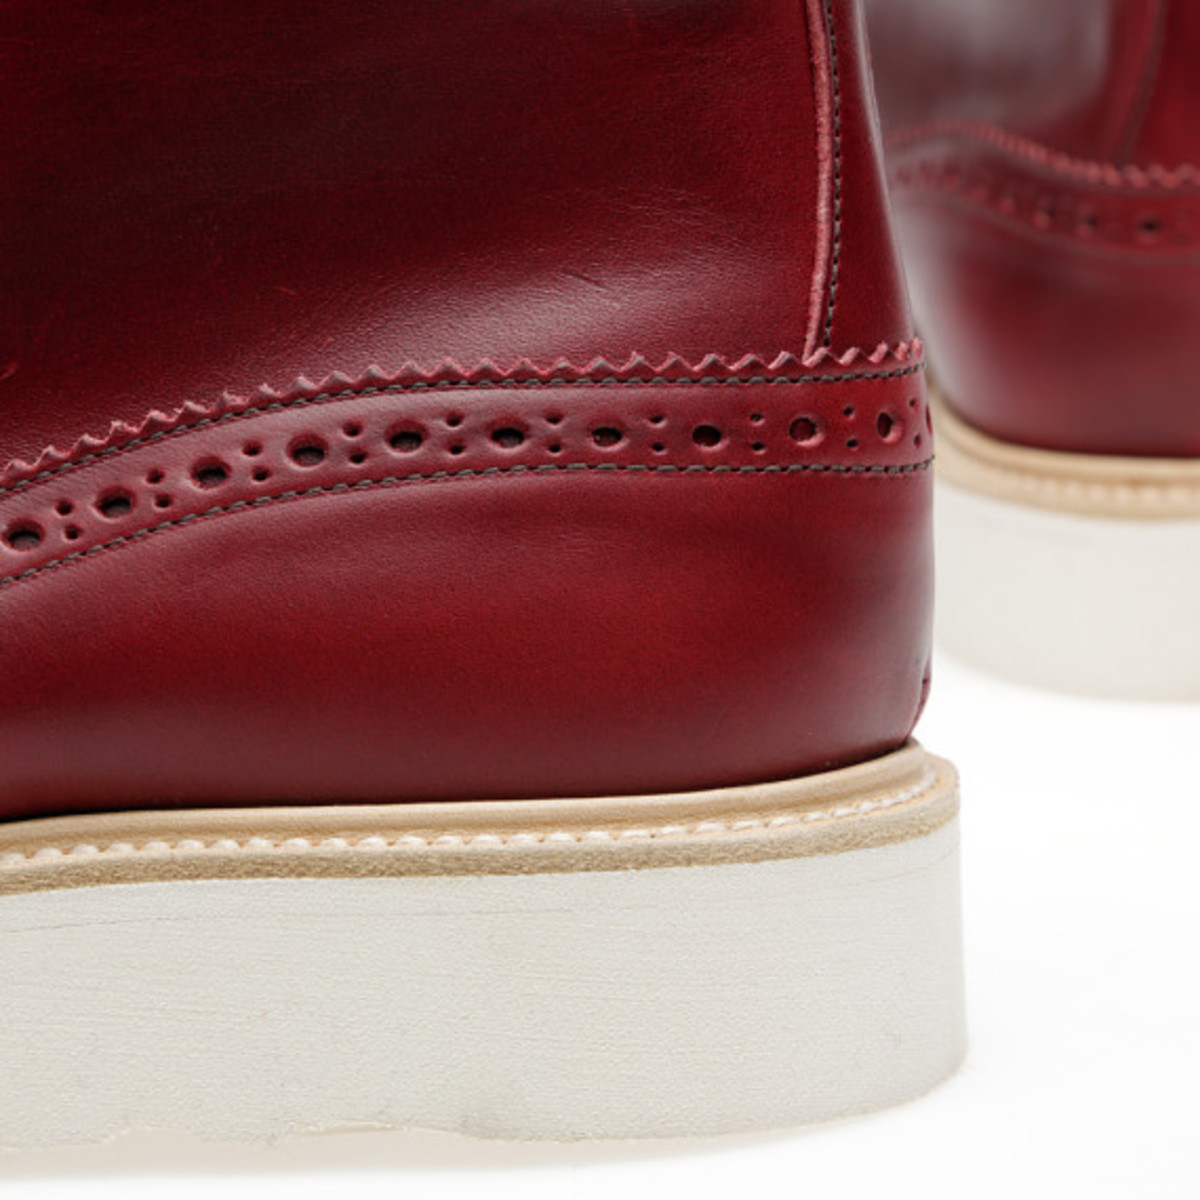 end-trickers-vibram-sole-stow-boot-16